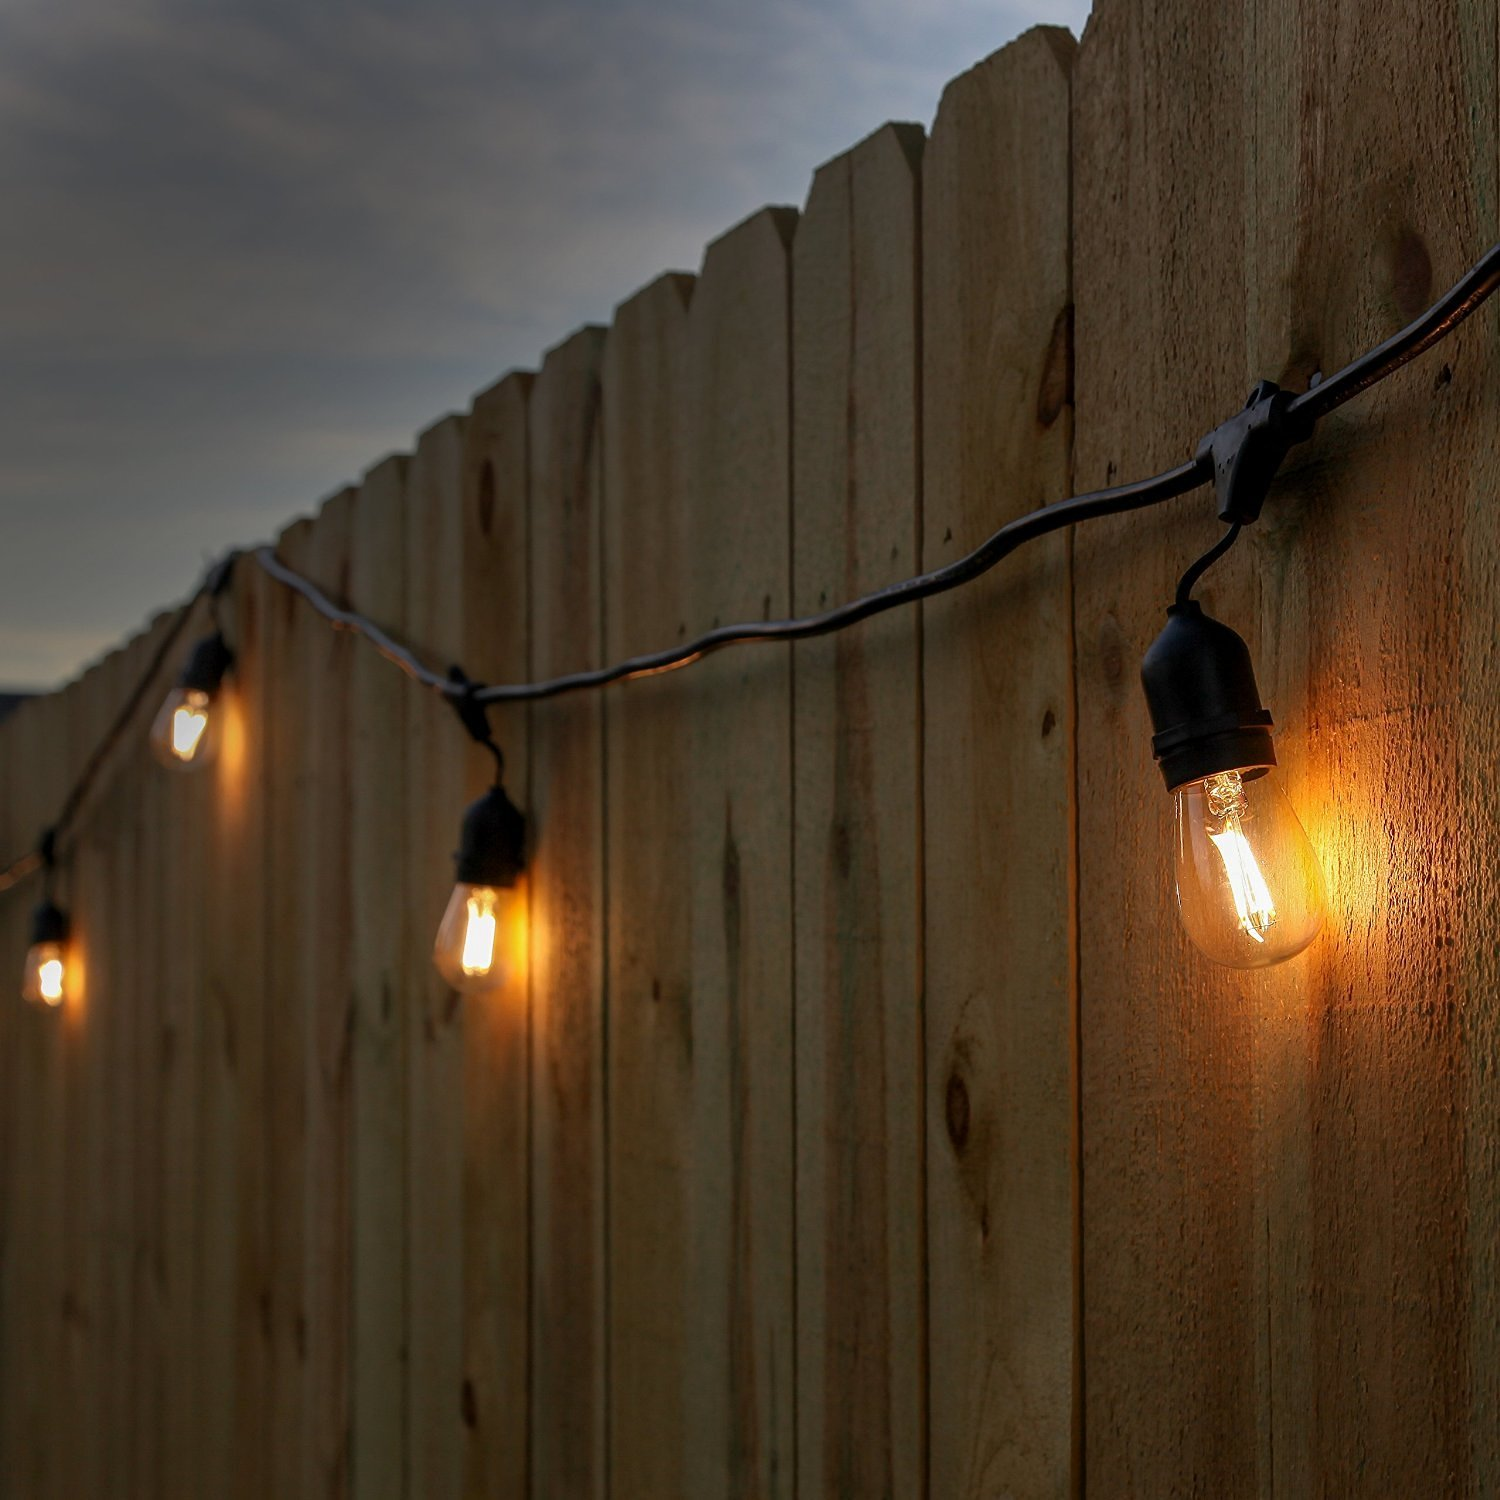 String Lights On House : Newhouse Lighting 48-Foot Outdoor String Lights, LED Bulbs Included